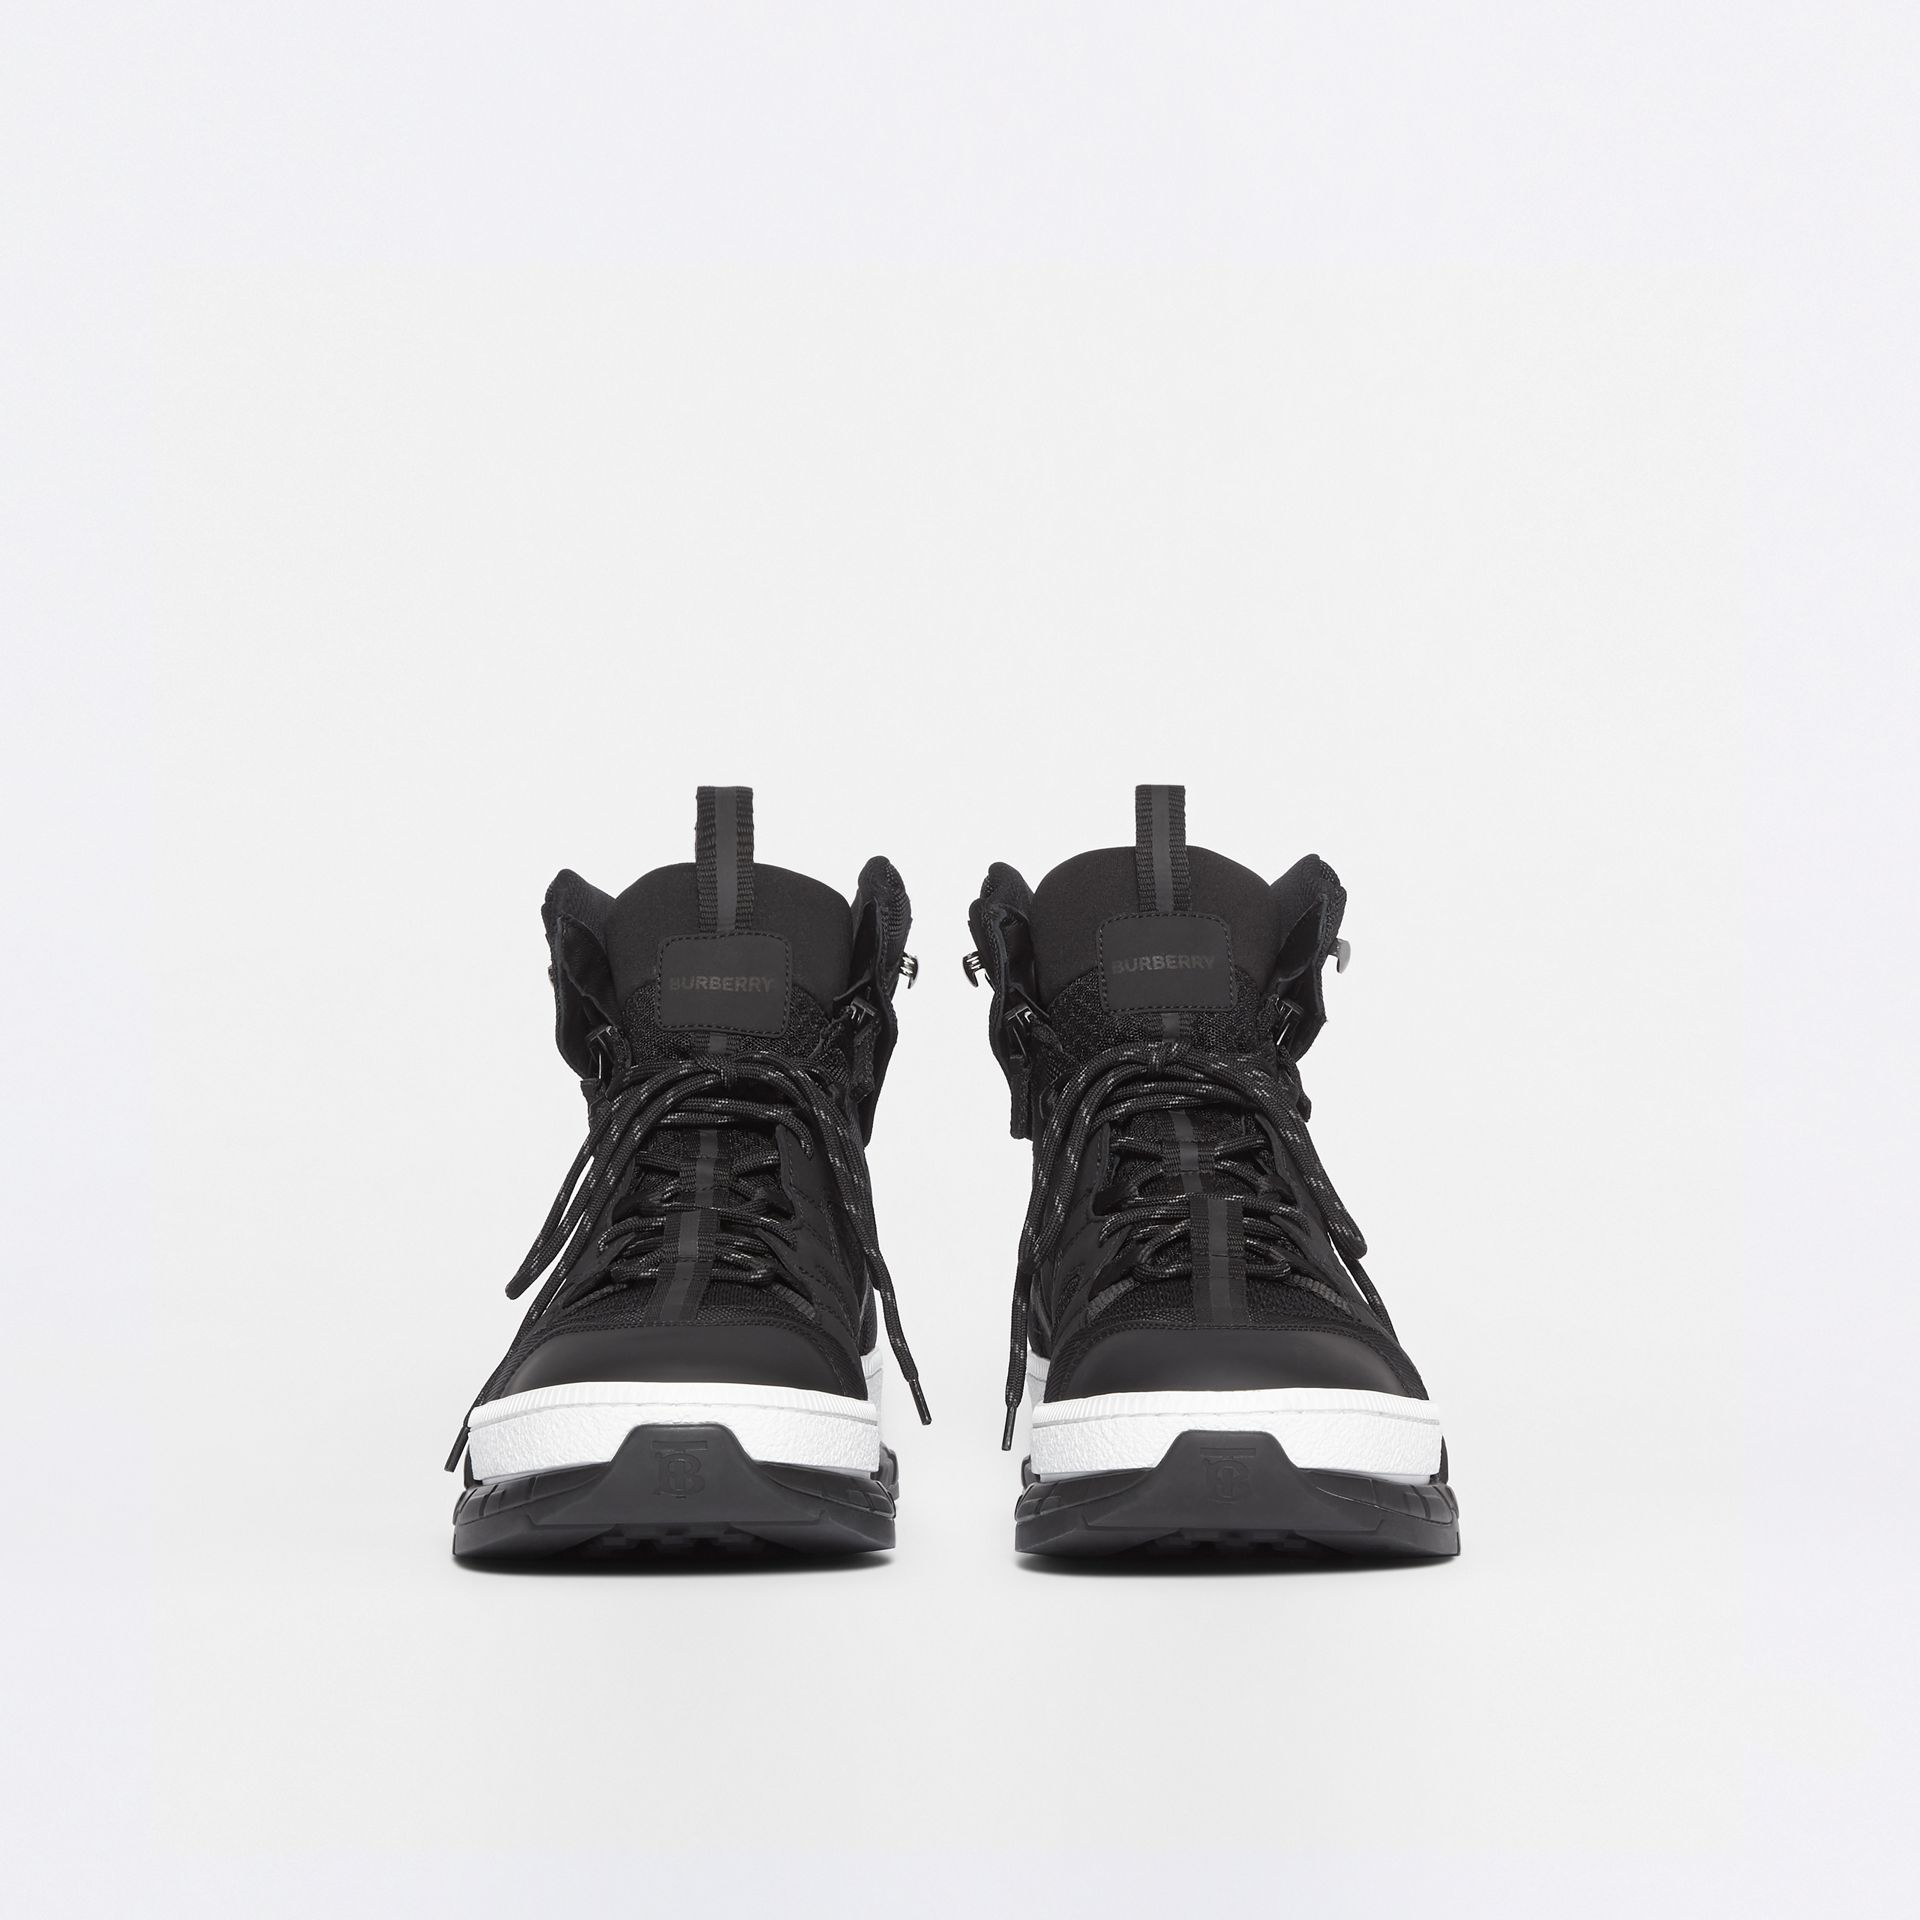 Mesh and Nubuck Union High-top Sneakers in Black - Men | Burberry Canada - gallery image 3